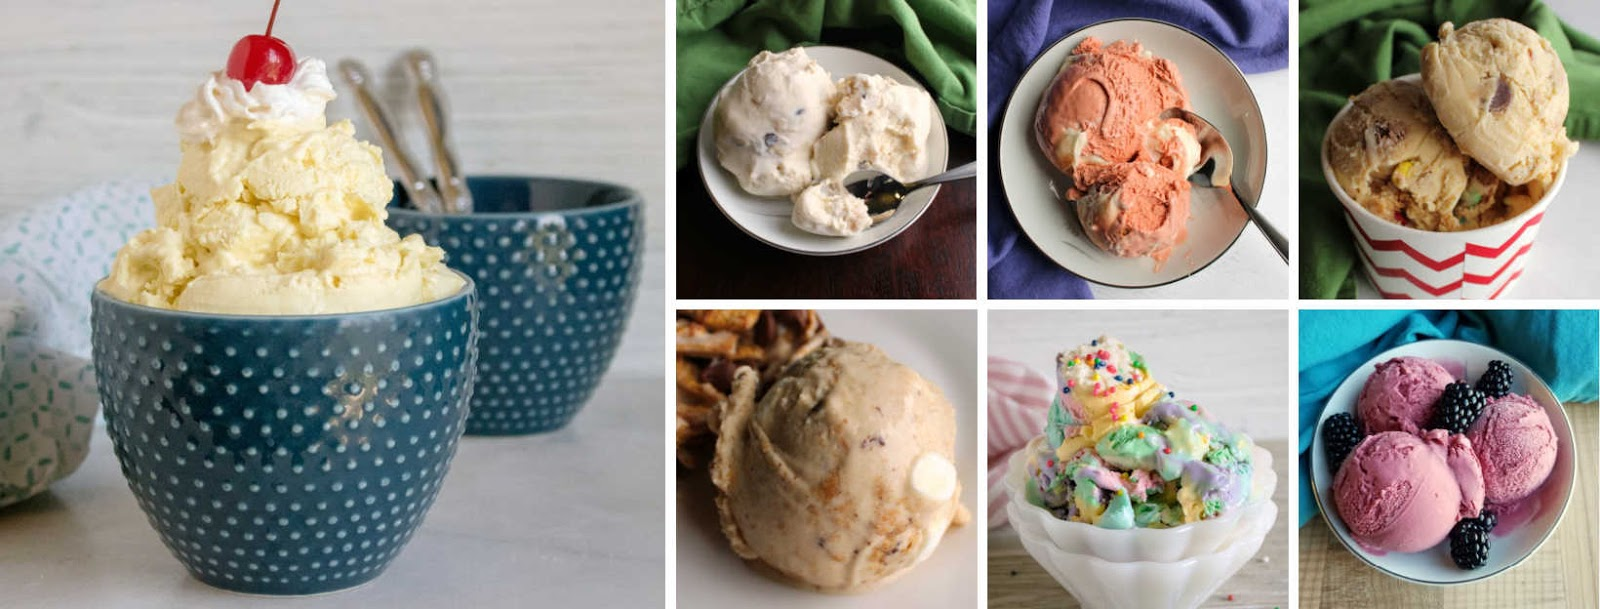 collage of homemade ice cream pictures